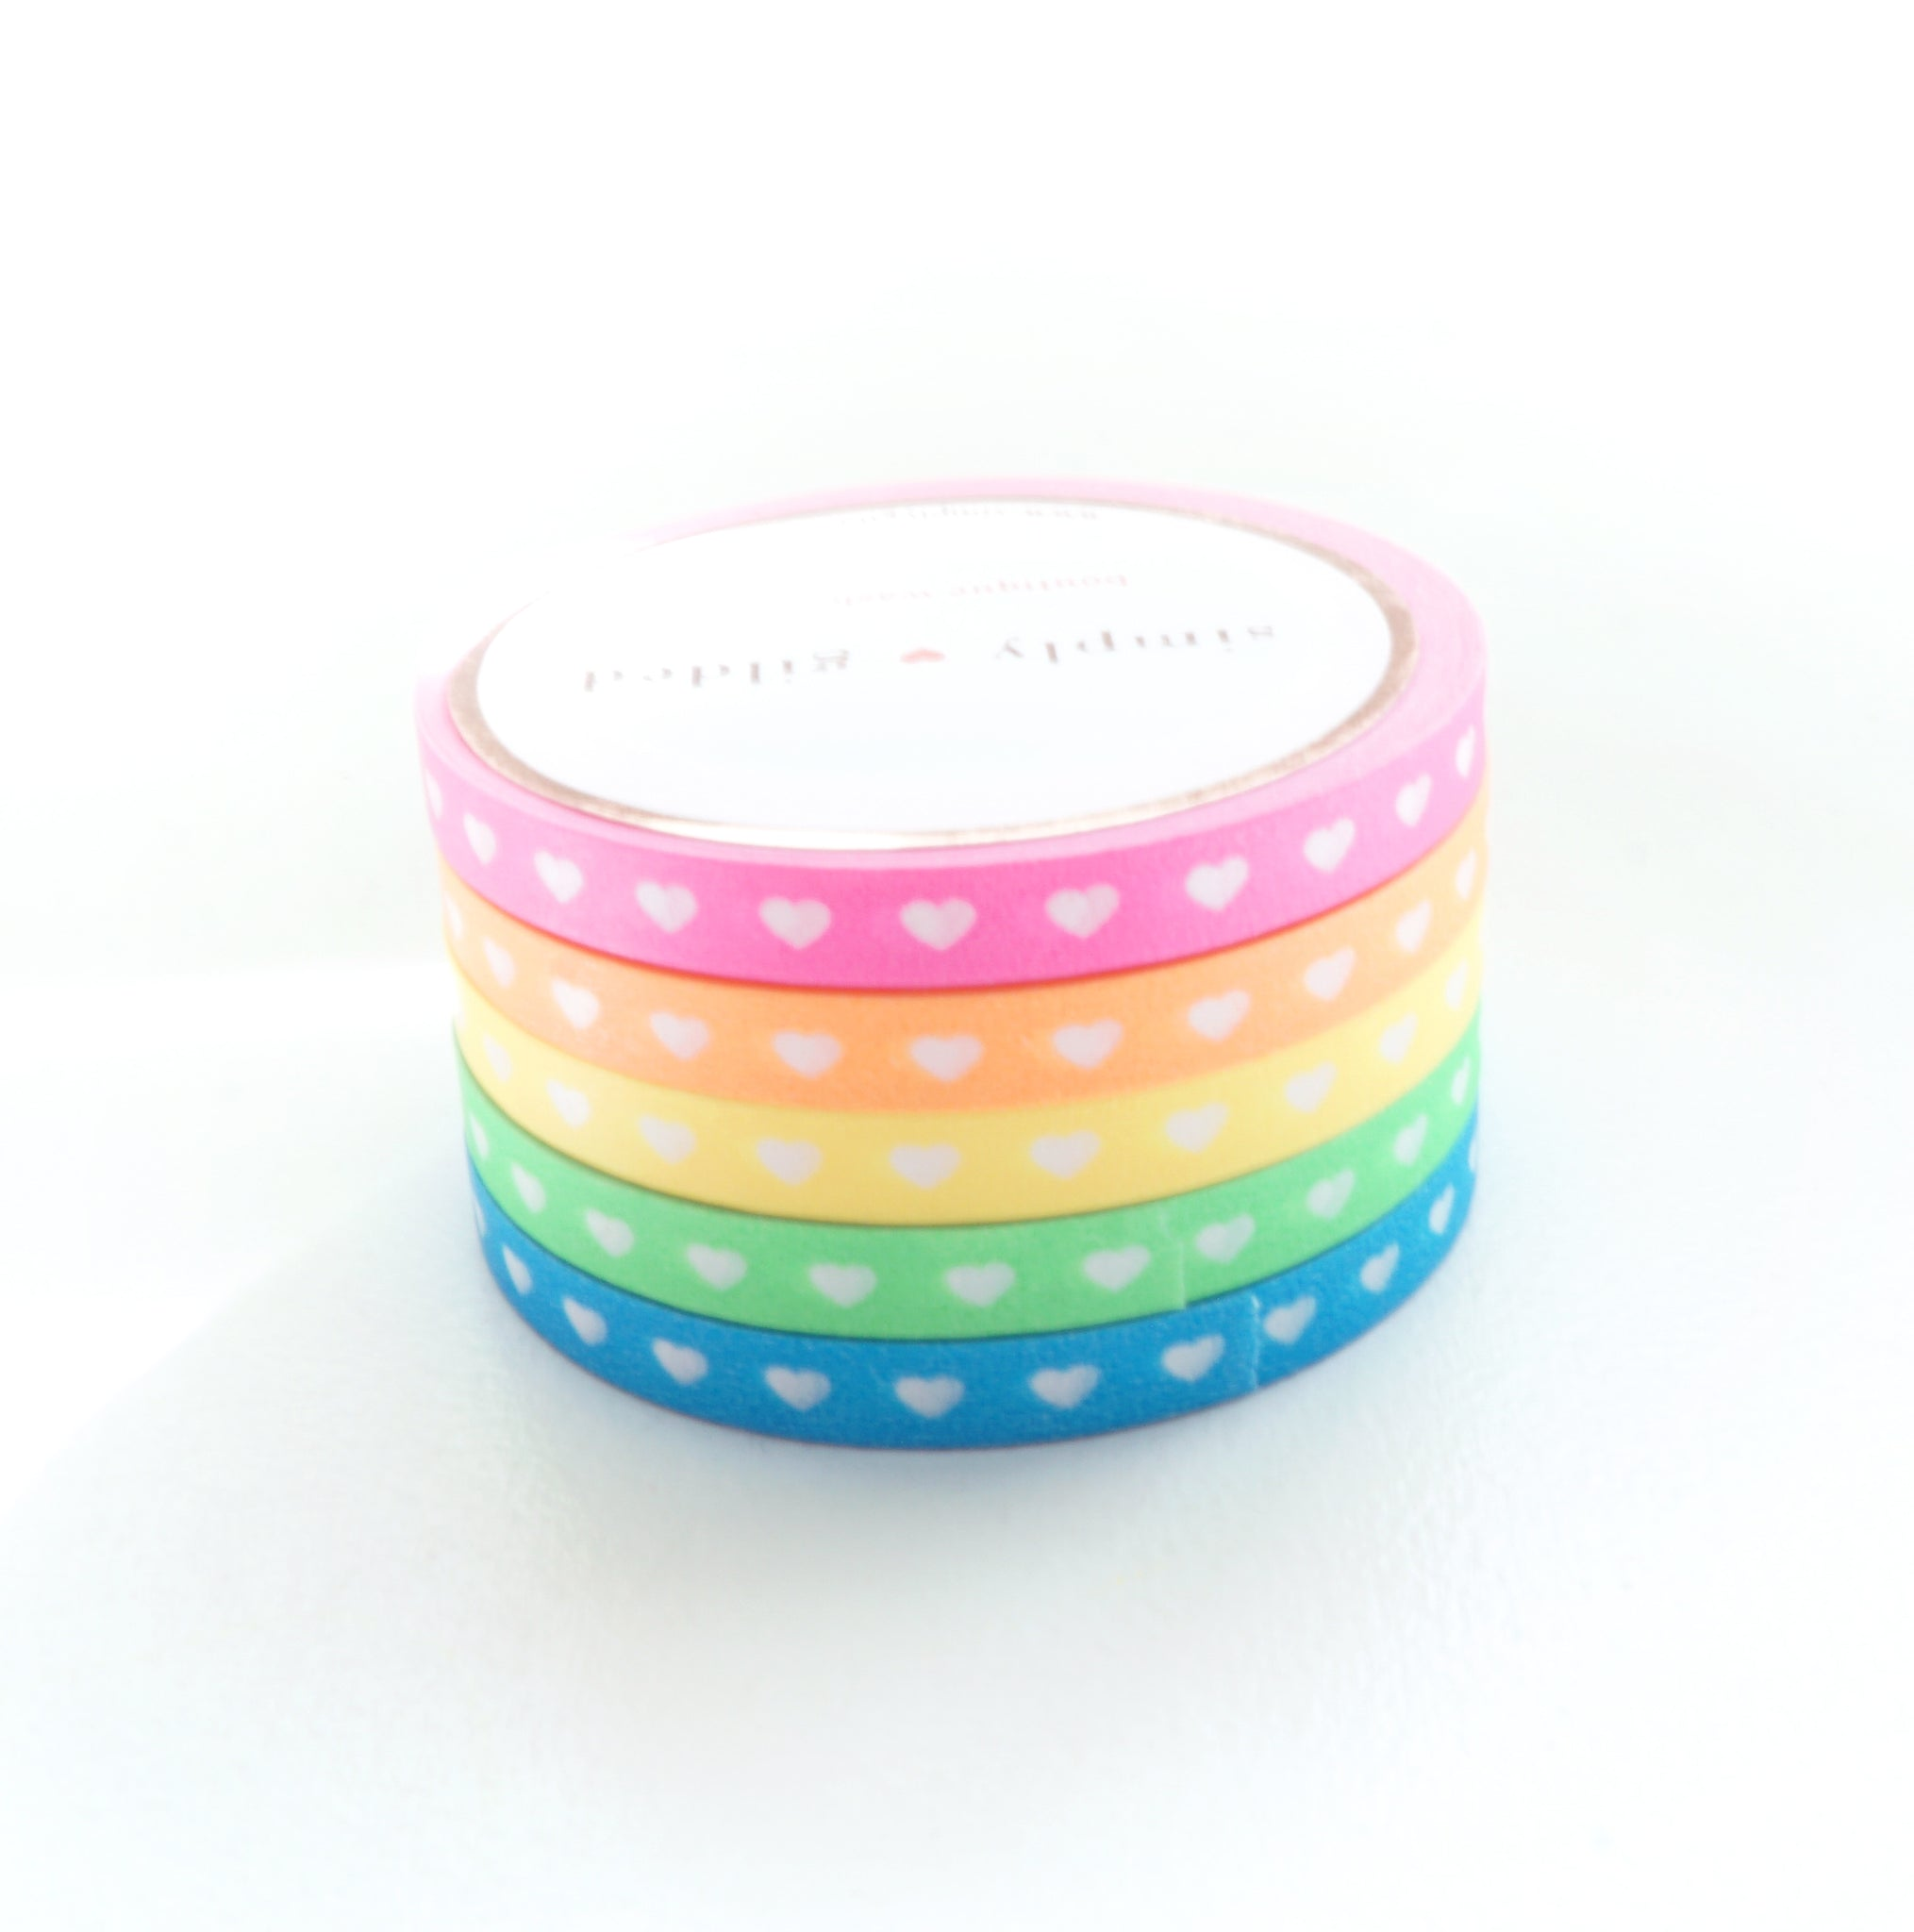 5mm HEARTS set of 5 - NEON pink/orange/yellow/green/blue + white hearts (May 29th Release)